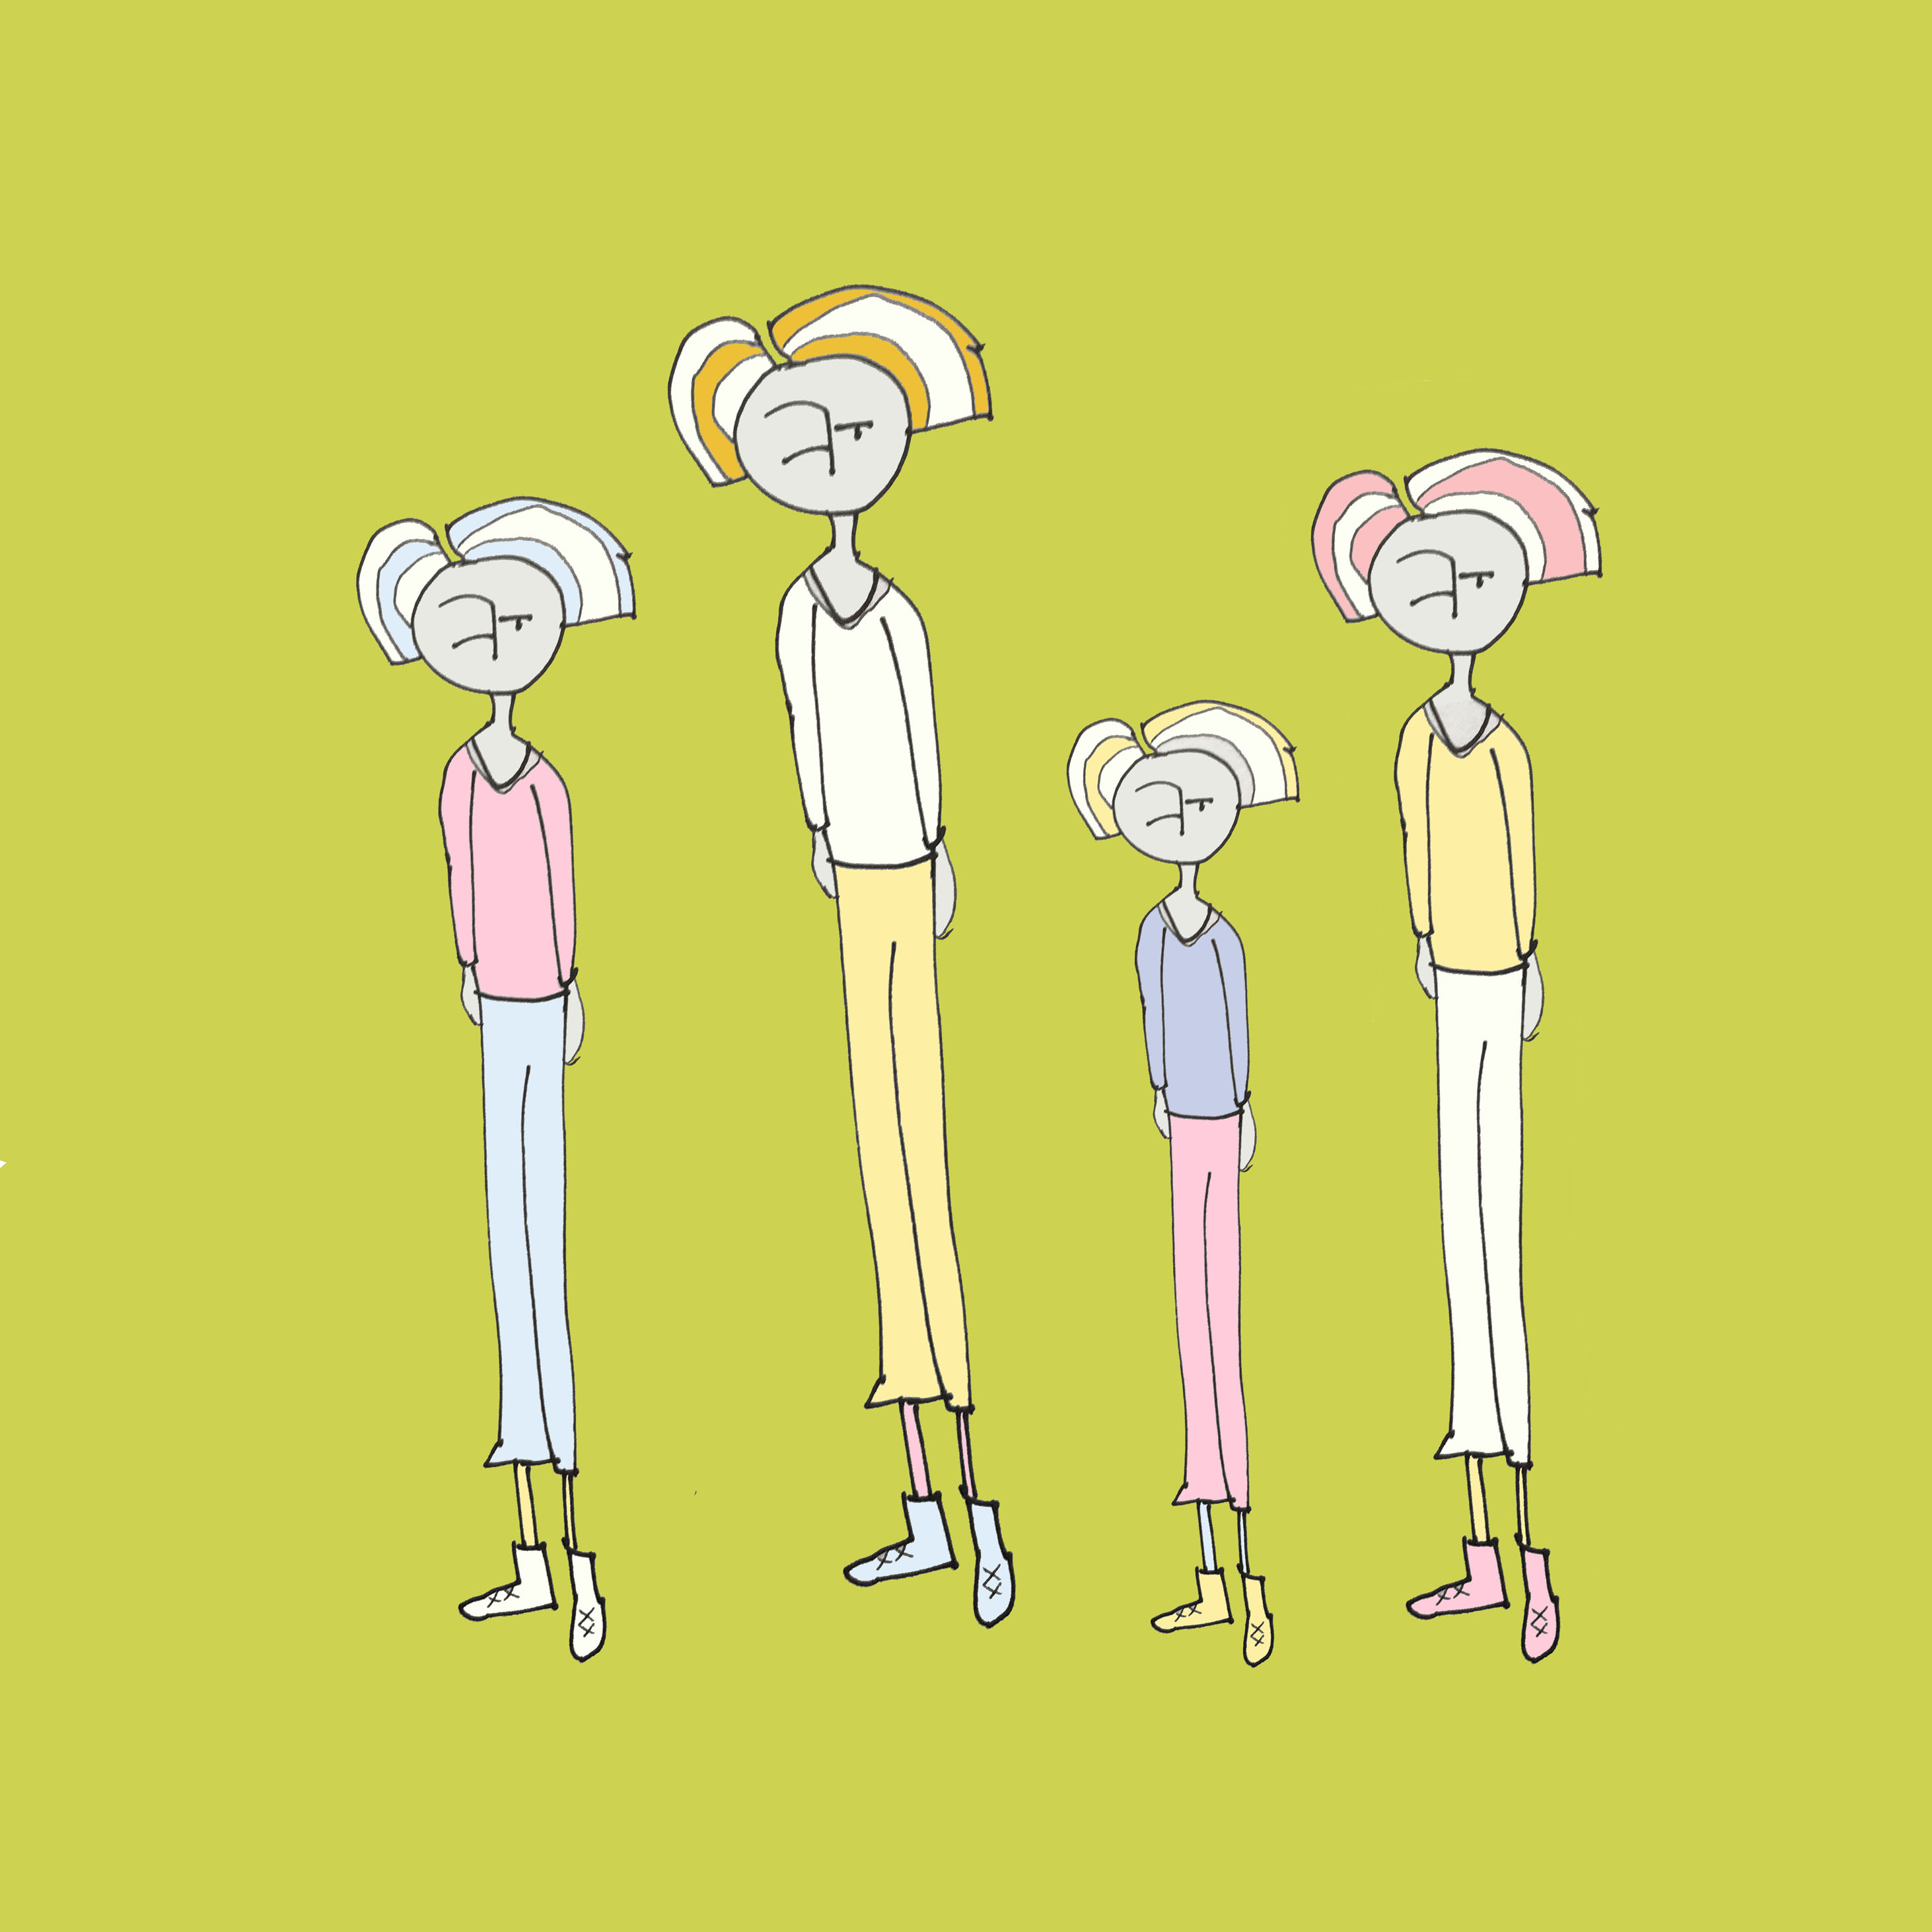 art every day number 233 family relatives illustration